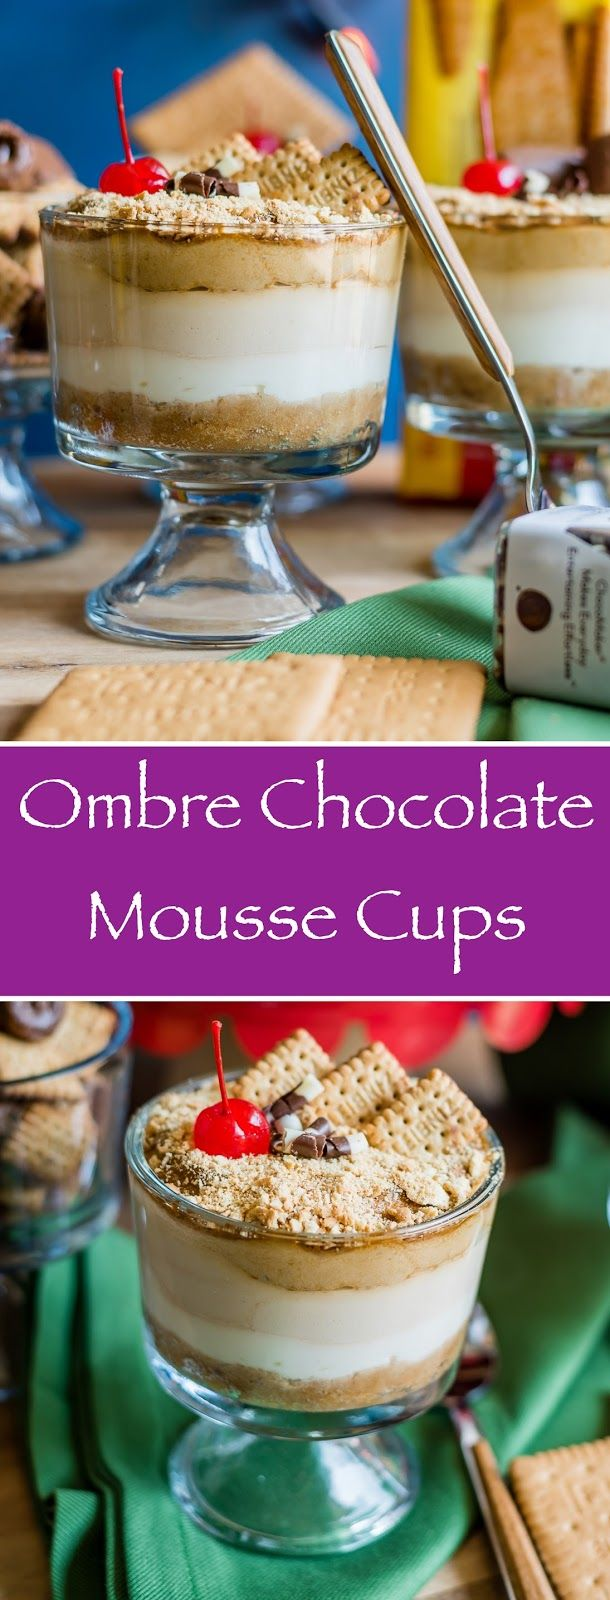 Herbivore Cucina: Ombre Chocolate Mousse Cups...Try this Ombré Chocolate Mousse recipe. Made using @bahlsen biscuits and few other ingredients, these dessert bowls are so easy to make, your kids can help in too. EGGLESS, NO COOK and NO BAKE, these should be on your Holiday Menu!! @worldmarket #ad #worldmarket #holidaygetaway #bahlsen #costplusworldmarket #eeeeeats #foodgasm #foodgawker #tasteandtell #herbivorecucina #ontheblog #epicurious #thekitchn #hautecuisines #gloobyfood #f52grams…